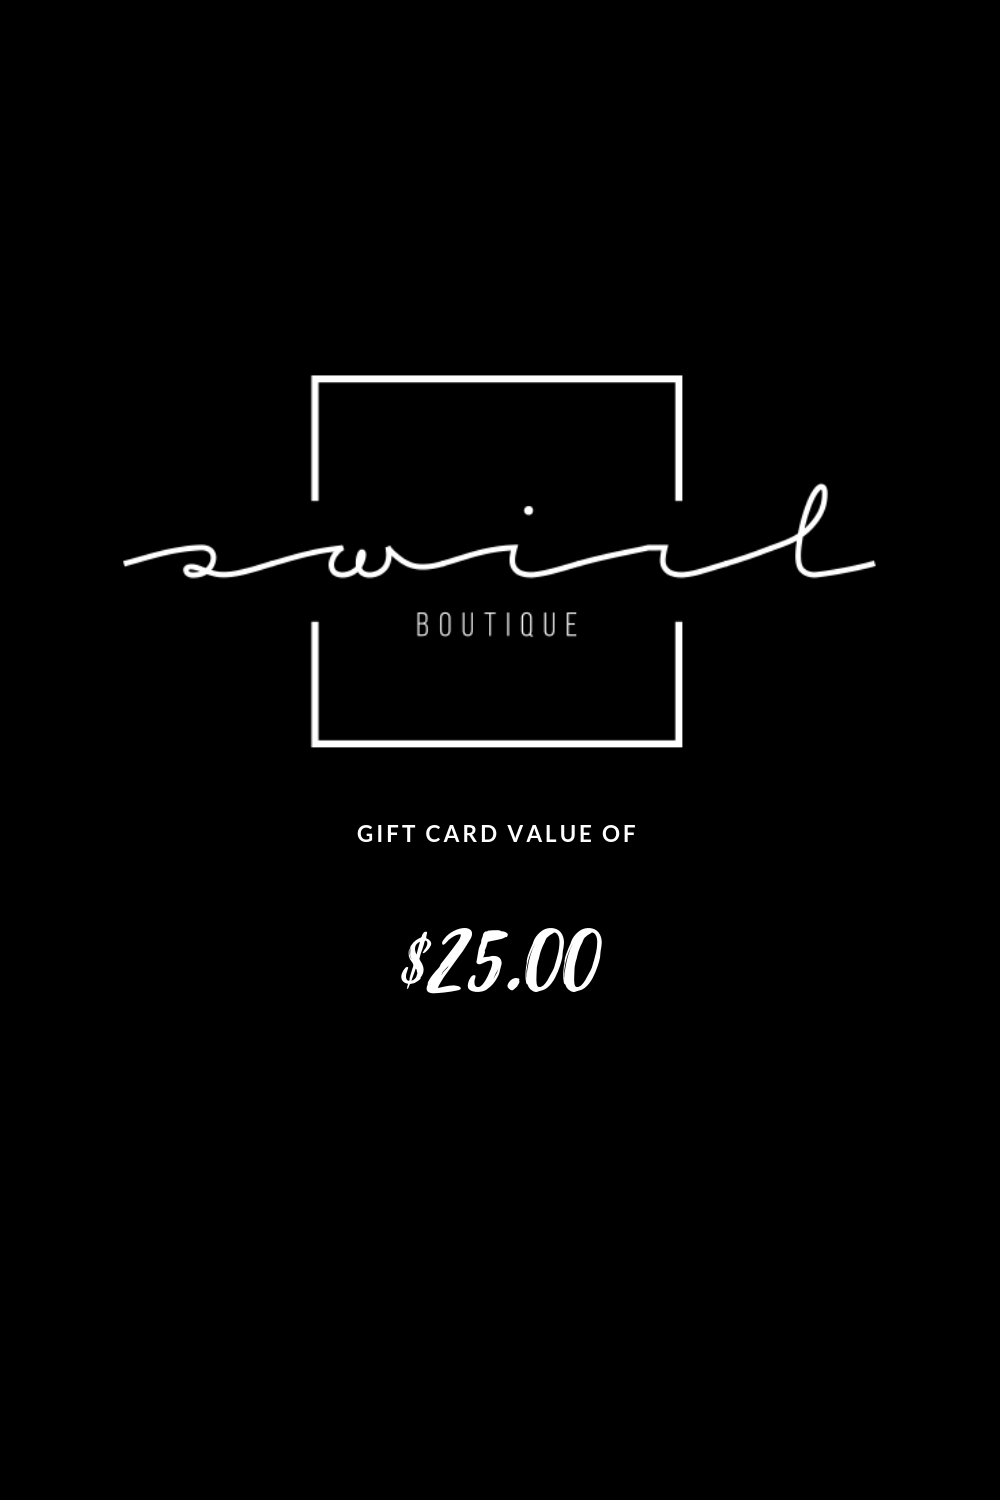 SWIRL BOUTIQUE GIFT CARD - $25